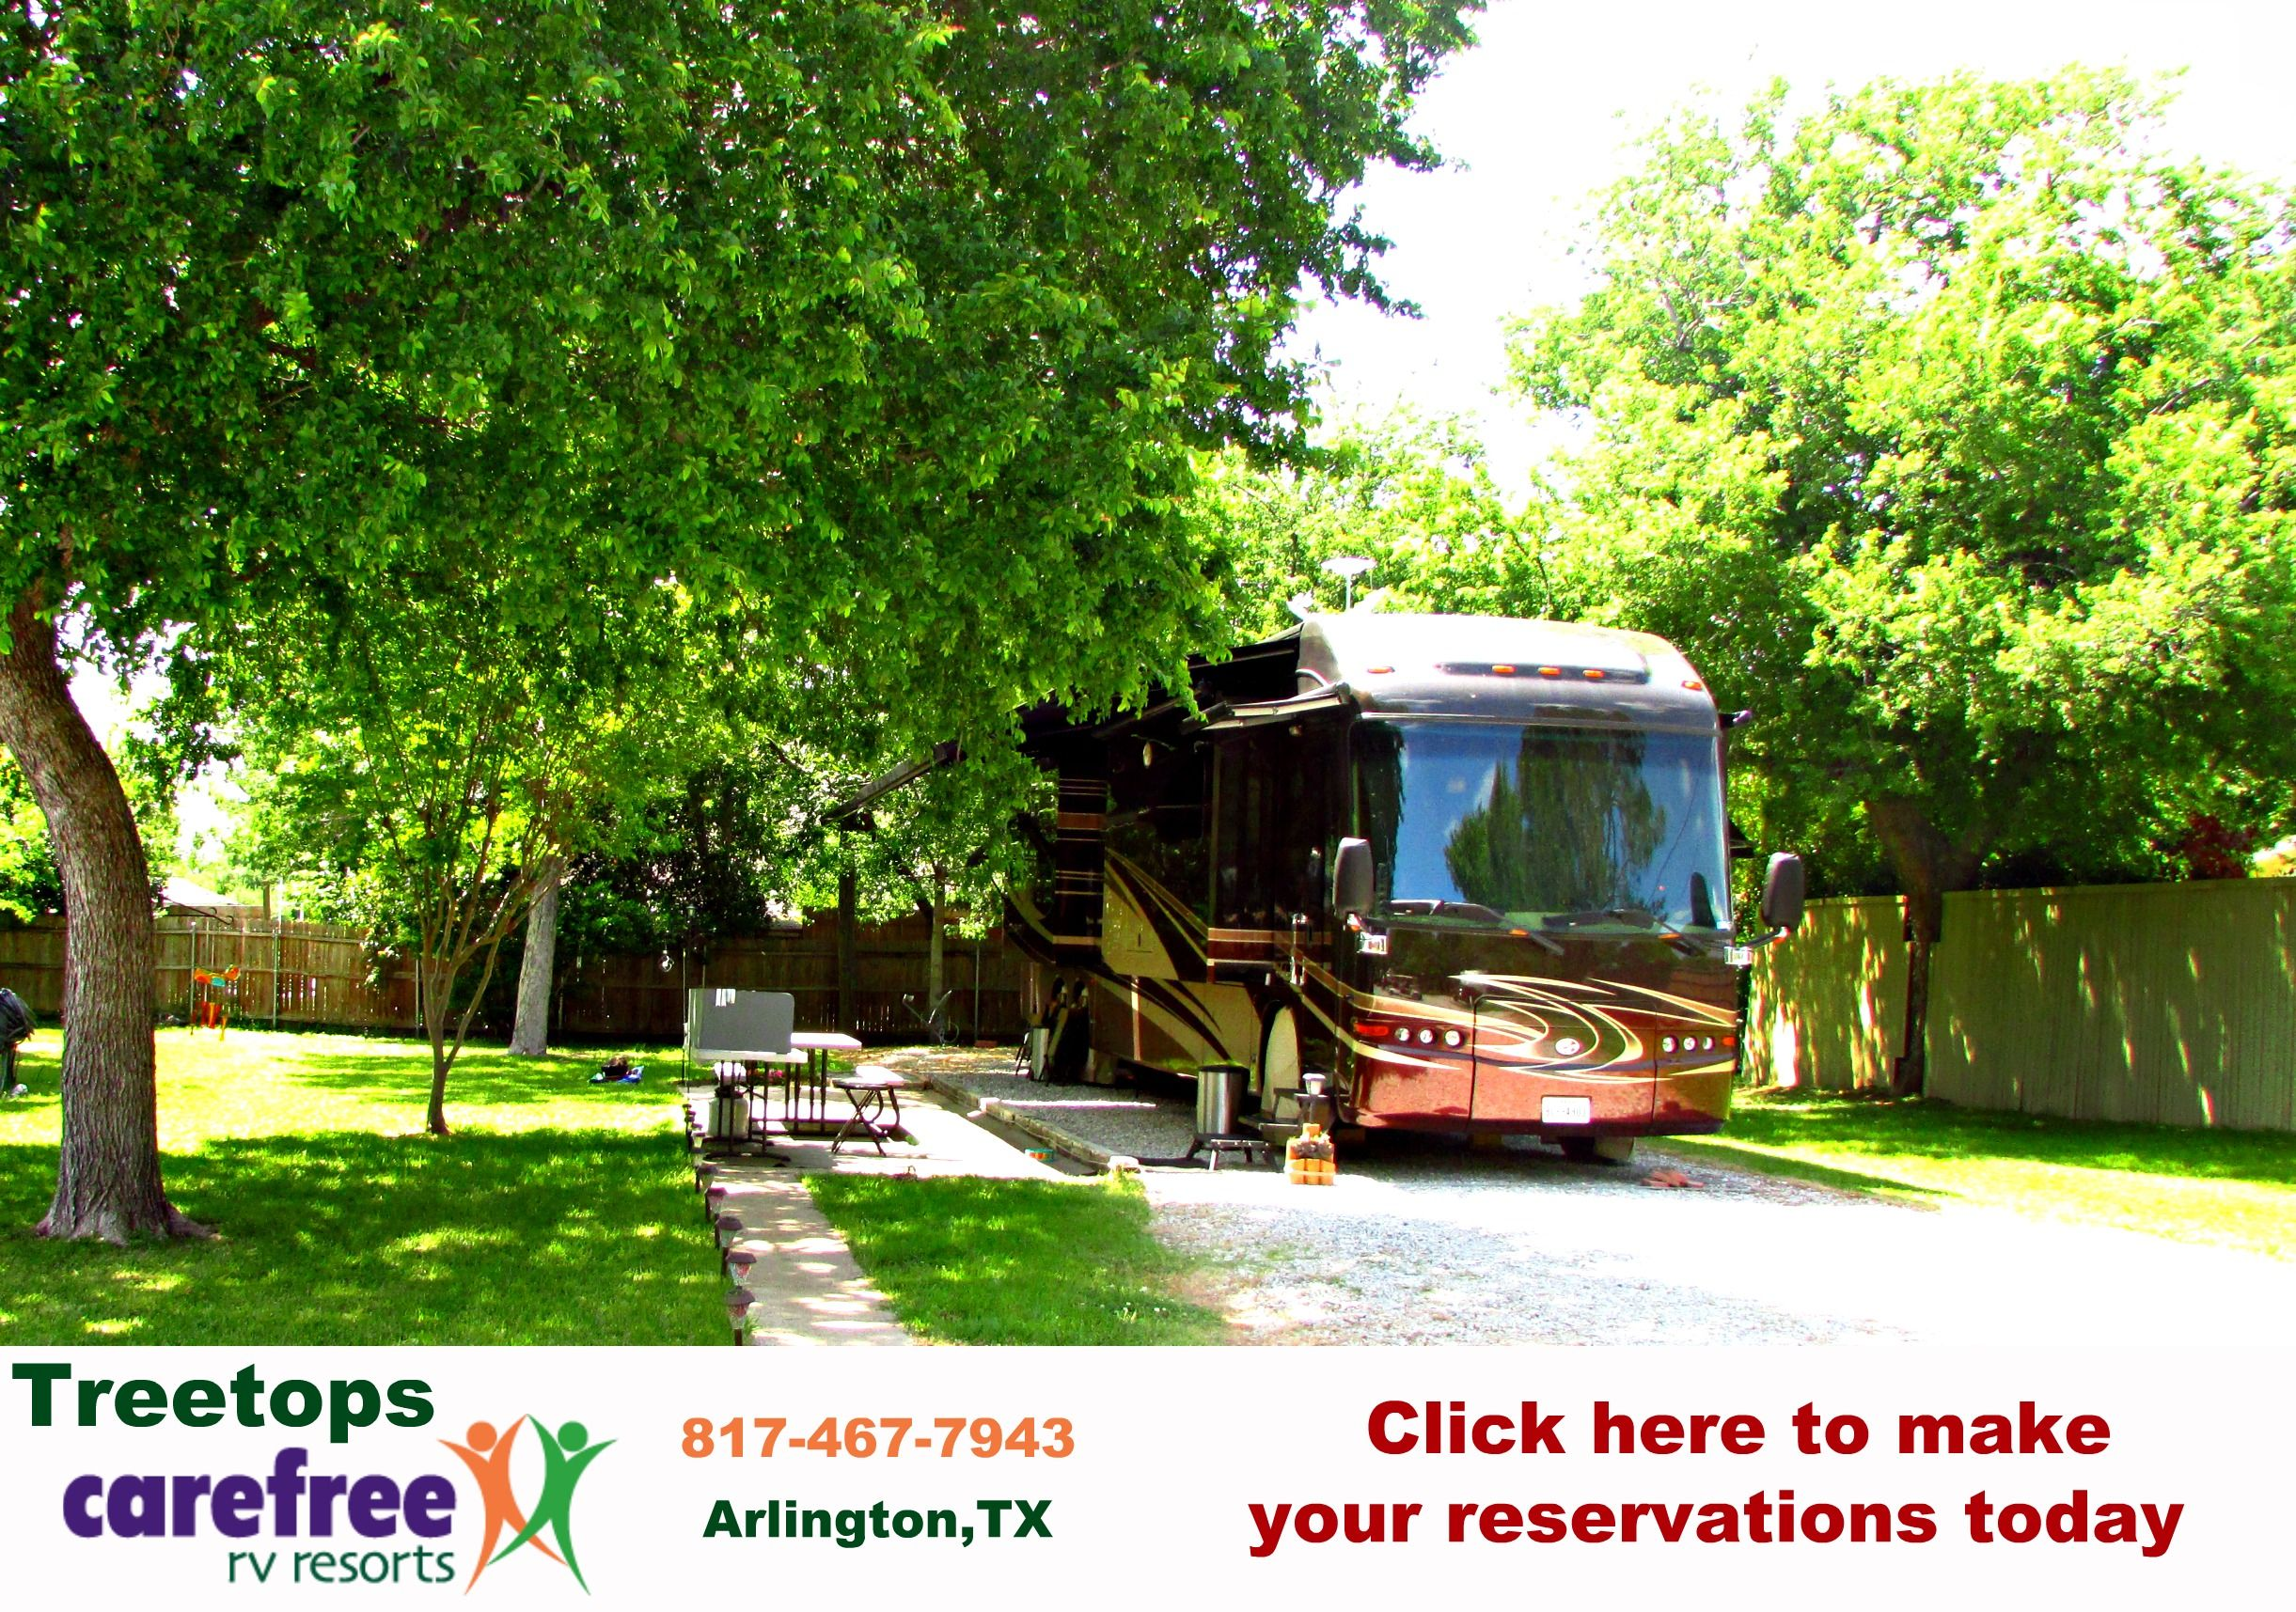 Visit Treetops Carefree Rv Resort In Arlington Tx And